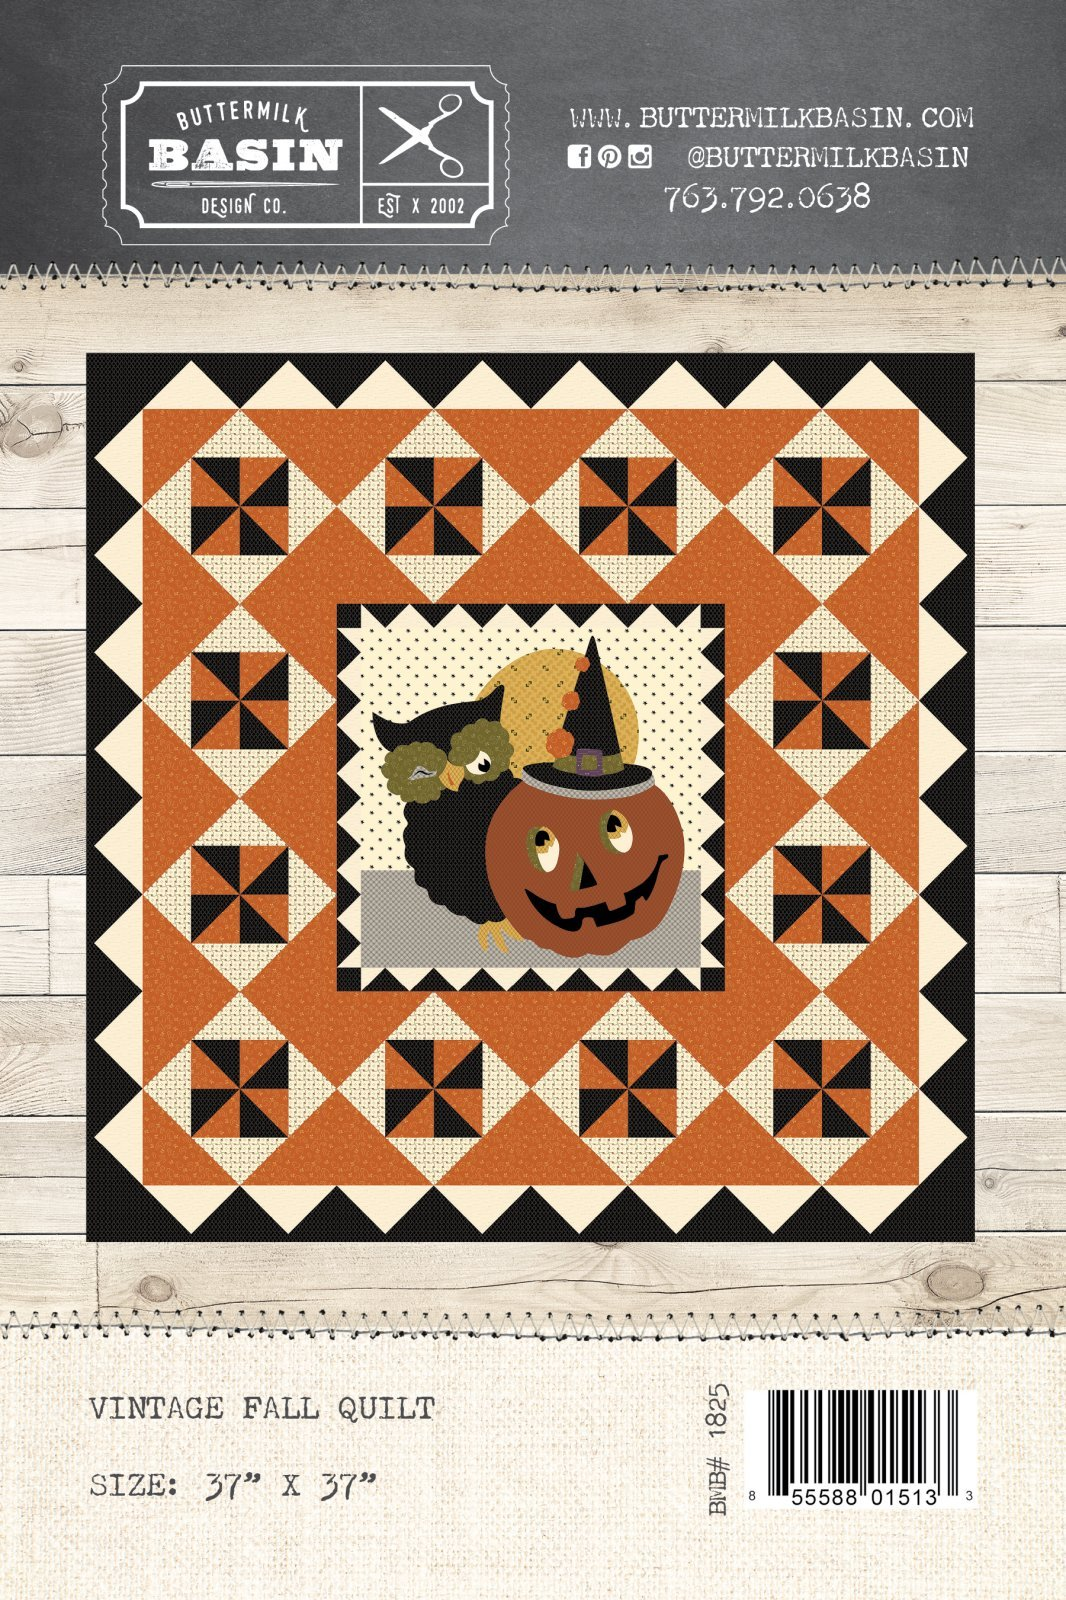 Vintage Fall Quilt